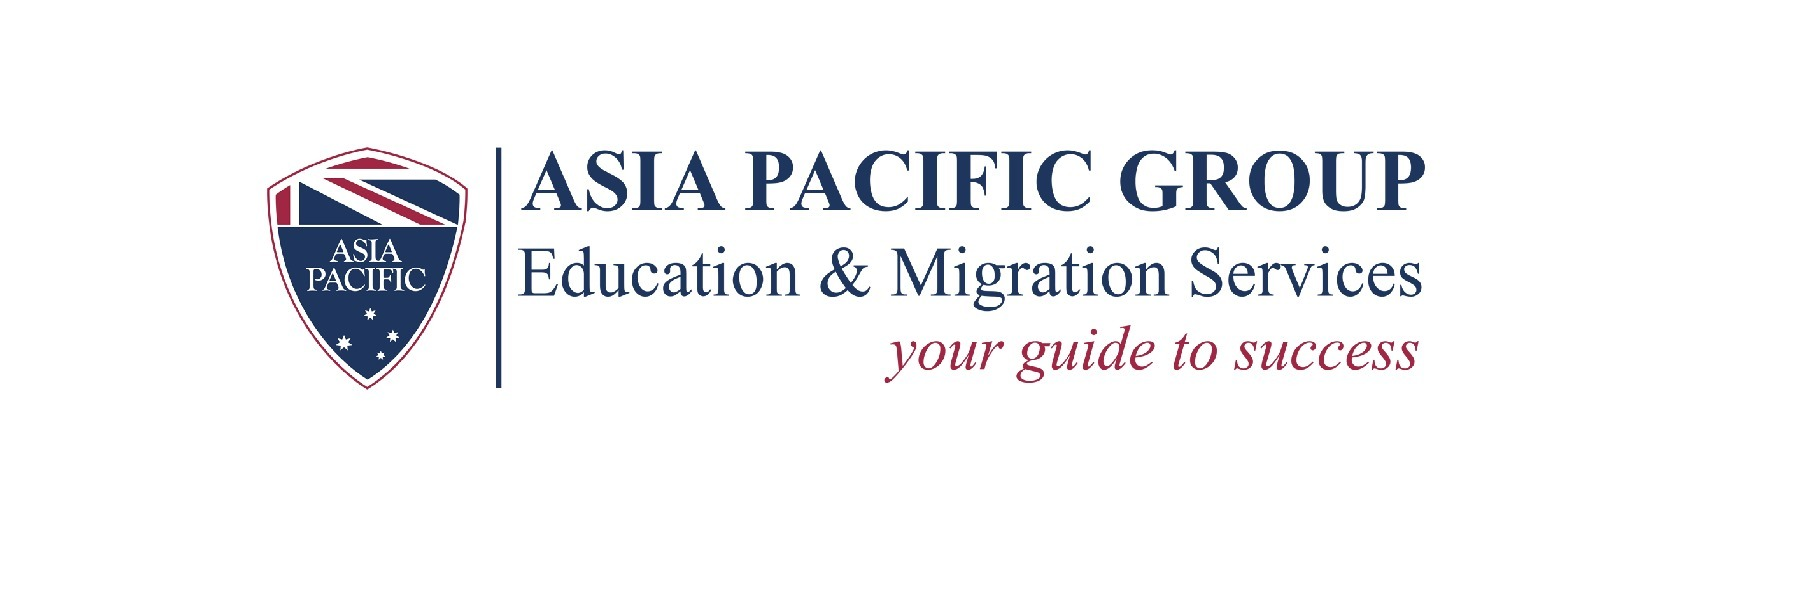 Asia Pacific Group (@asiapacificgroupaus) Cover Image